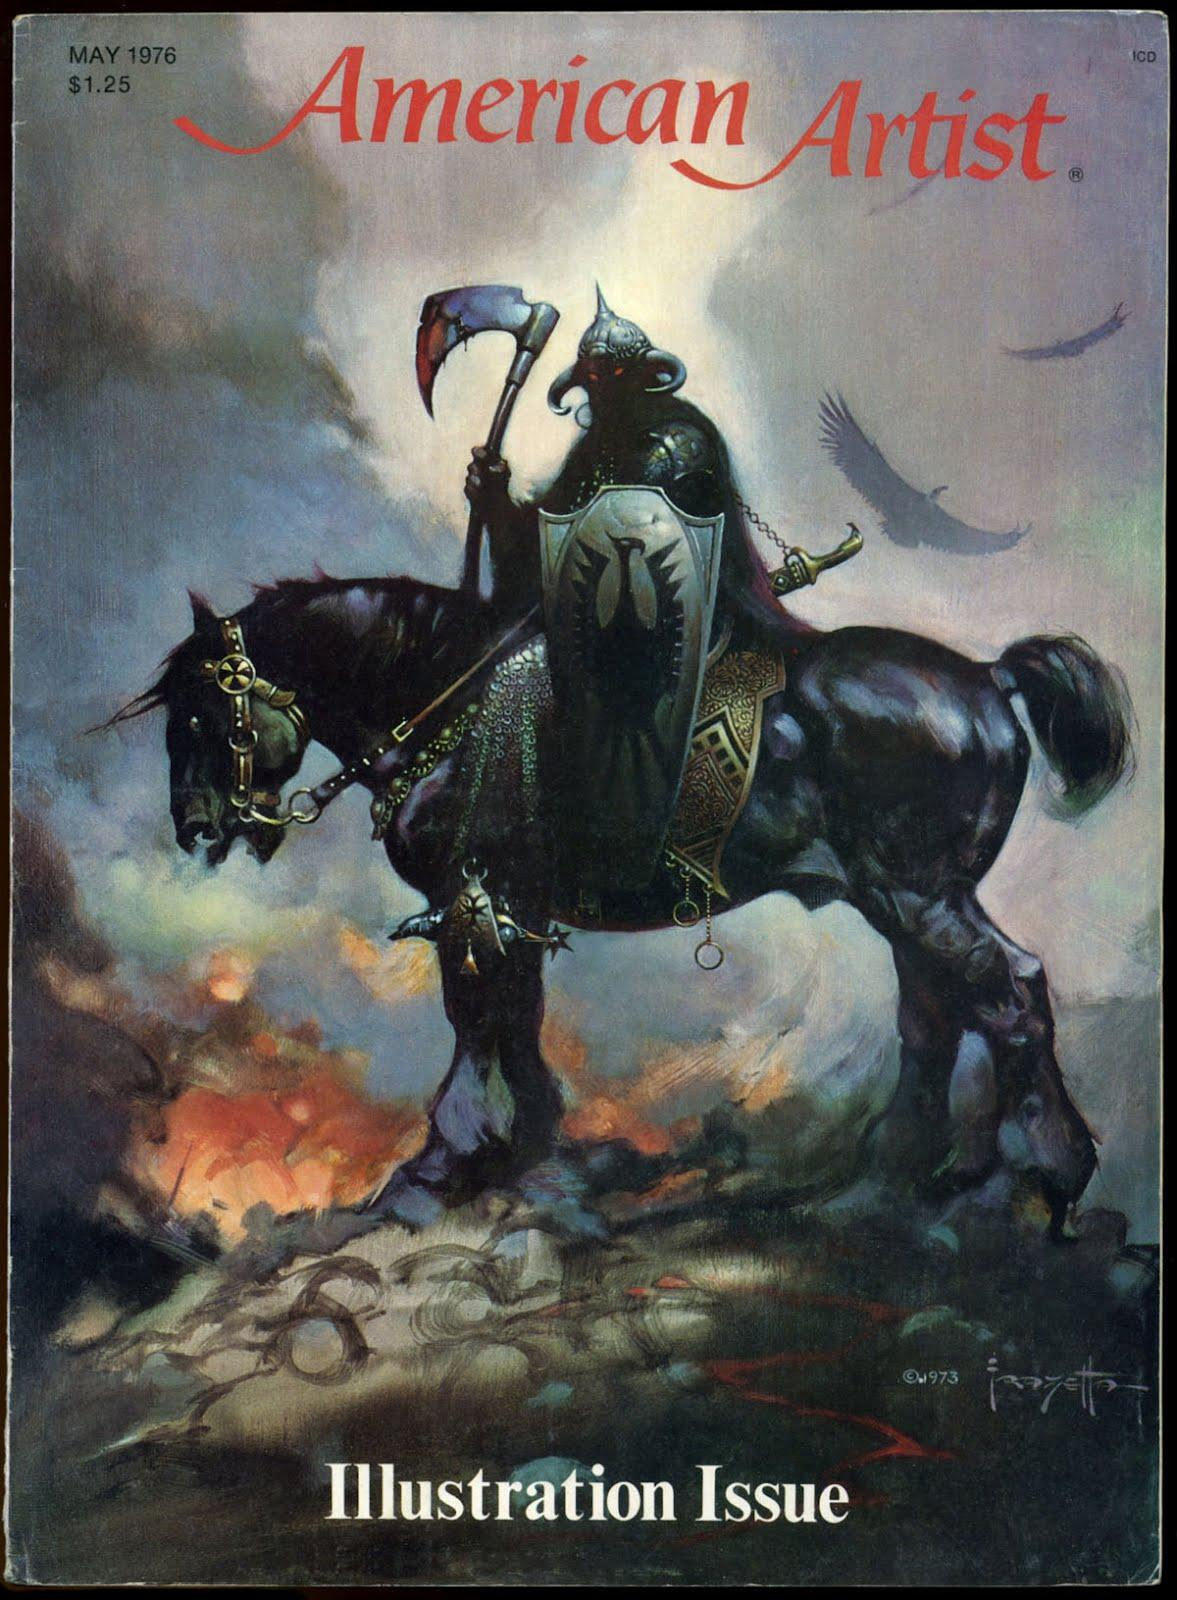 Frazetta_AmericanArtist_May1976_100.jpg (1177×1600)